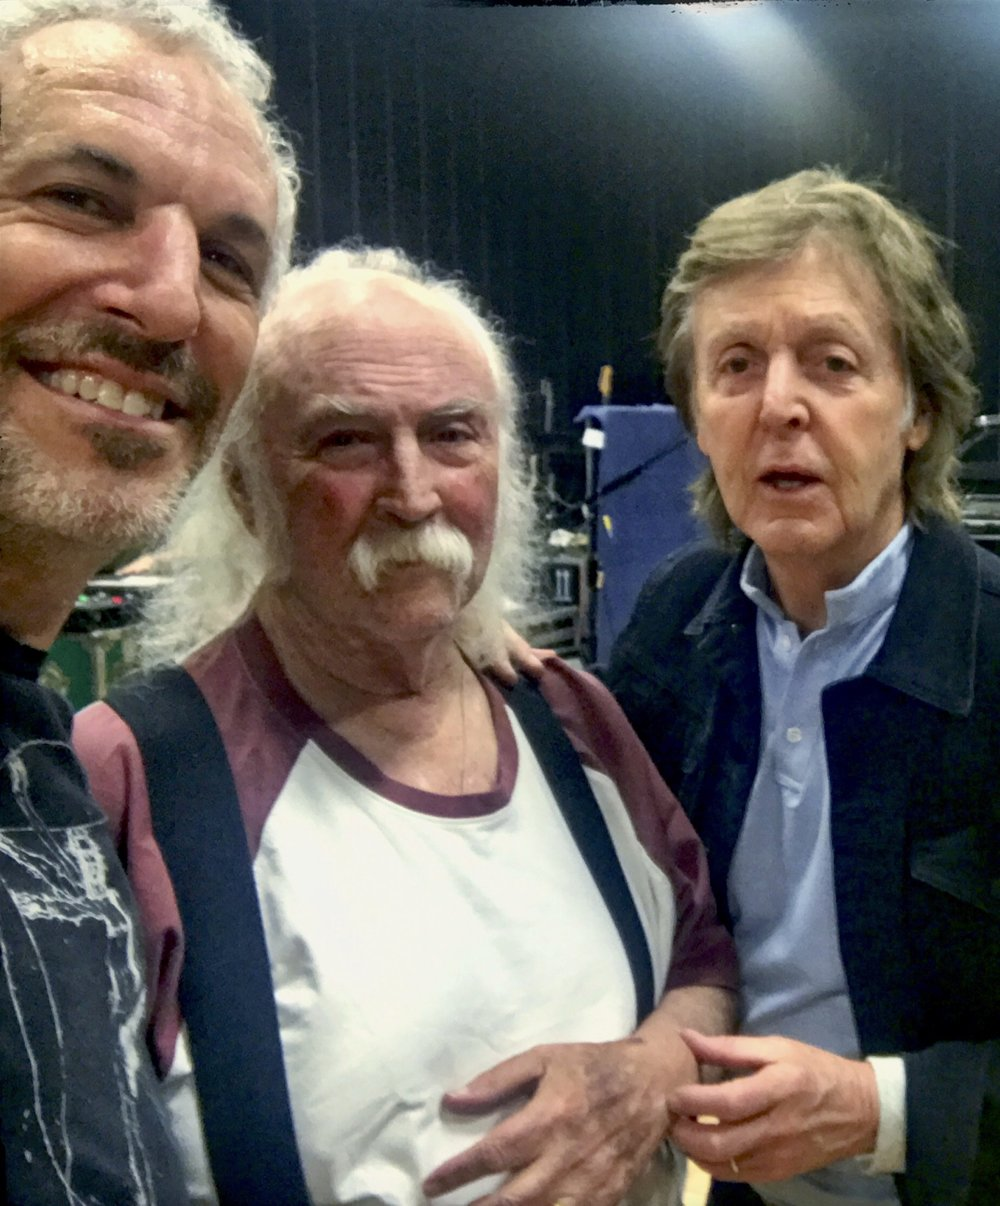 JP, Croz & Paul MaCartney